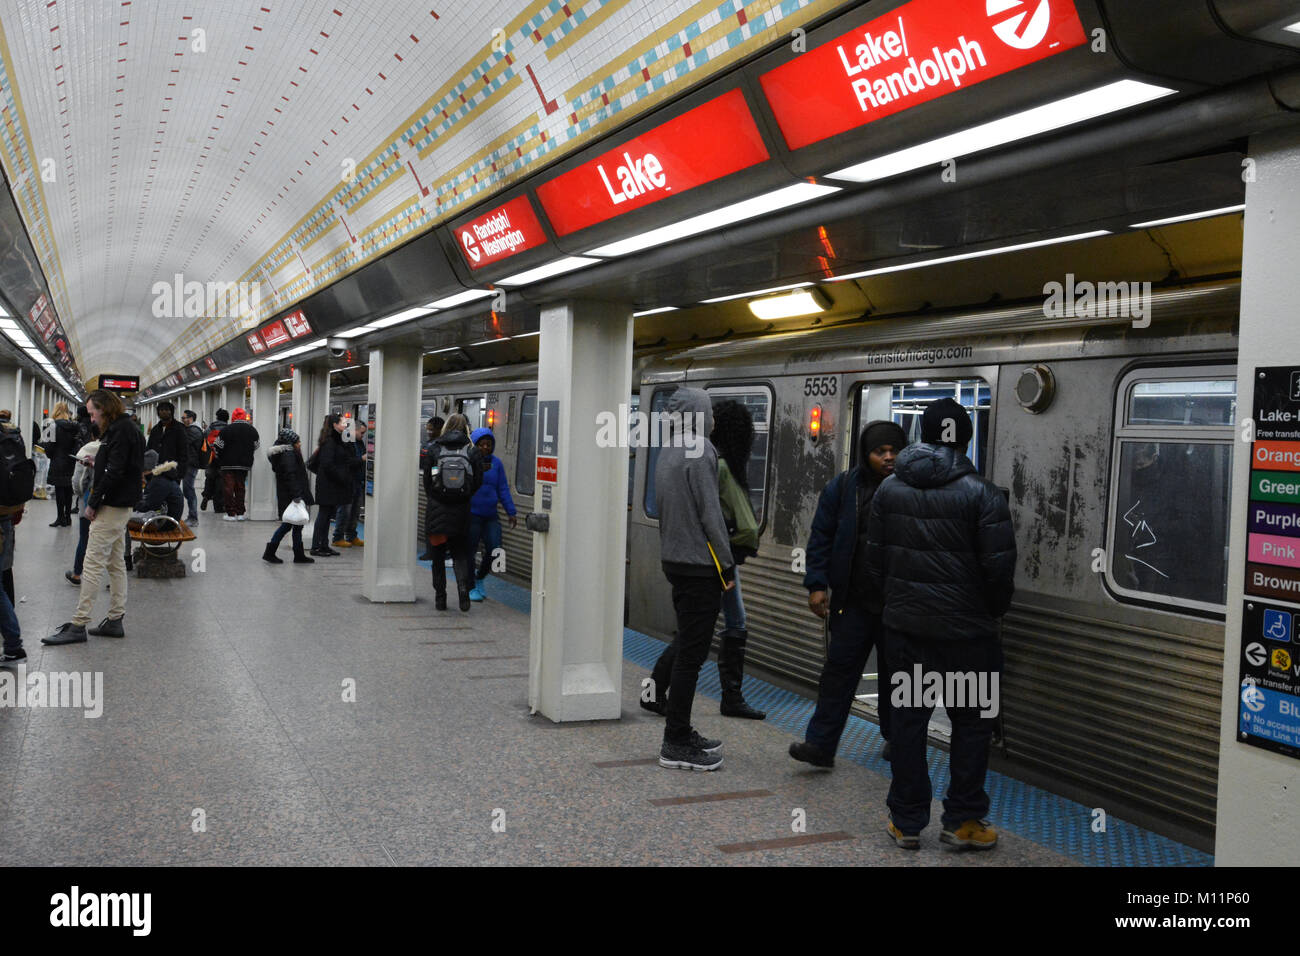 Passengers board a south bound Red Line train on the State Street Subway. The Lake St. stop provides easy access - Stock Image